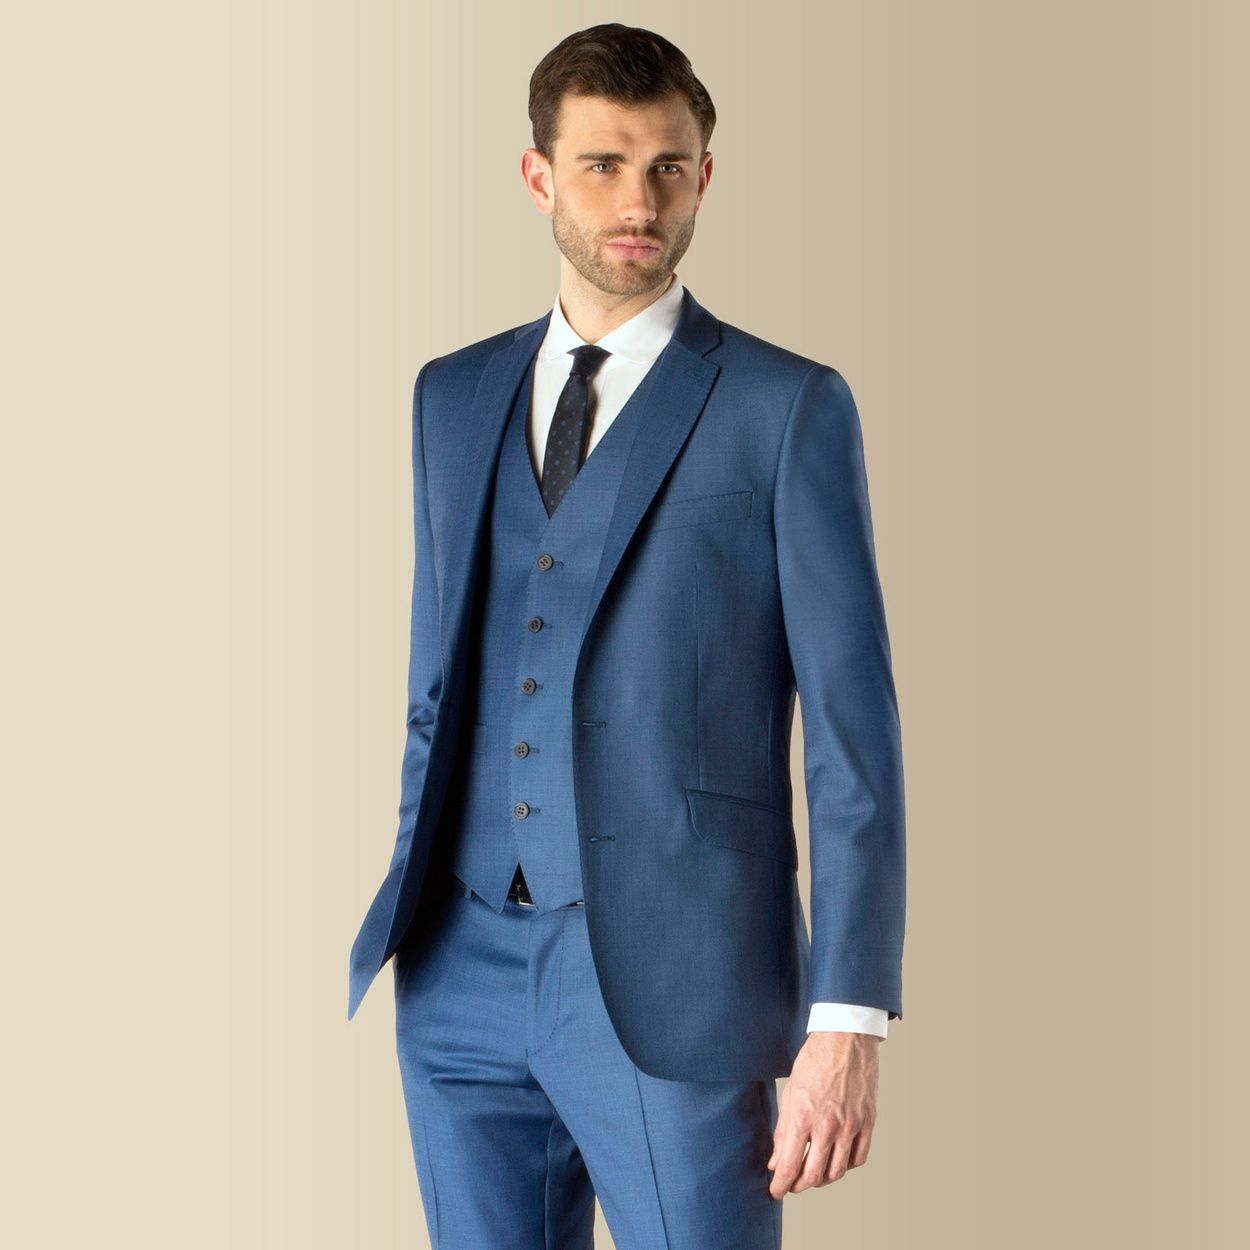 Attractive Wedding Suits For Guys Pattern - All Wedding Dresses ...